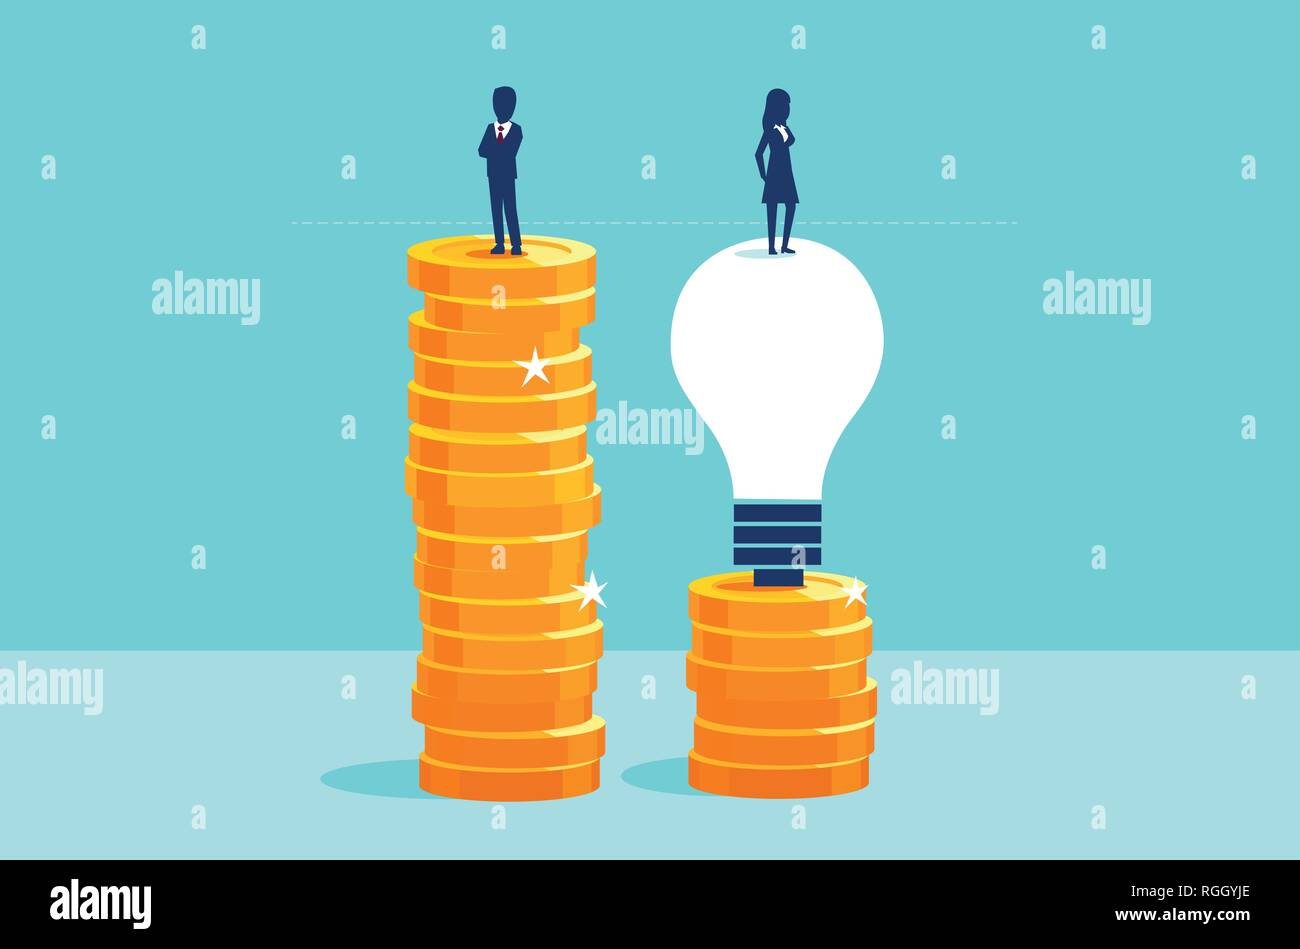 Corporate job and education opportunities for women concept. Vector of an educated businesswoman reaching same pay level as a businessman - Stock Image